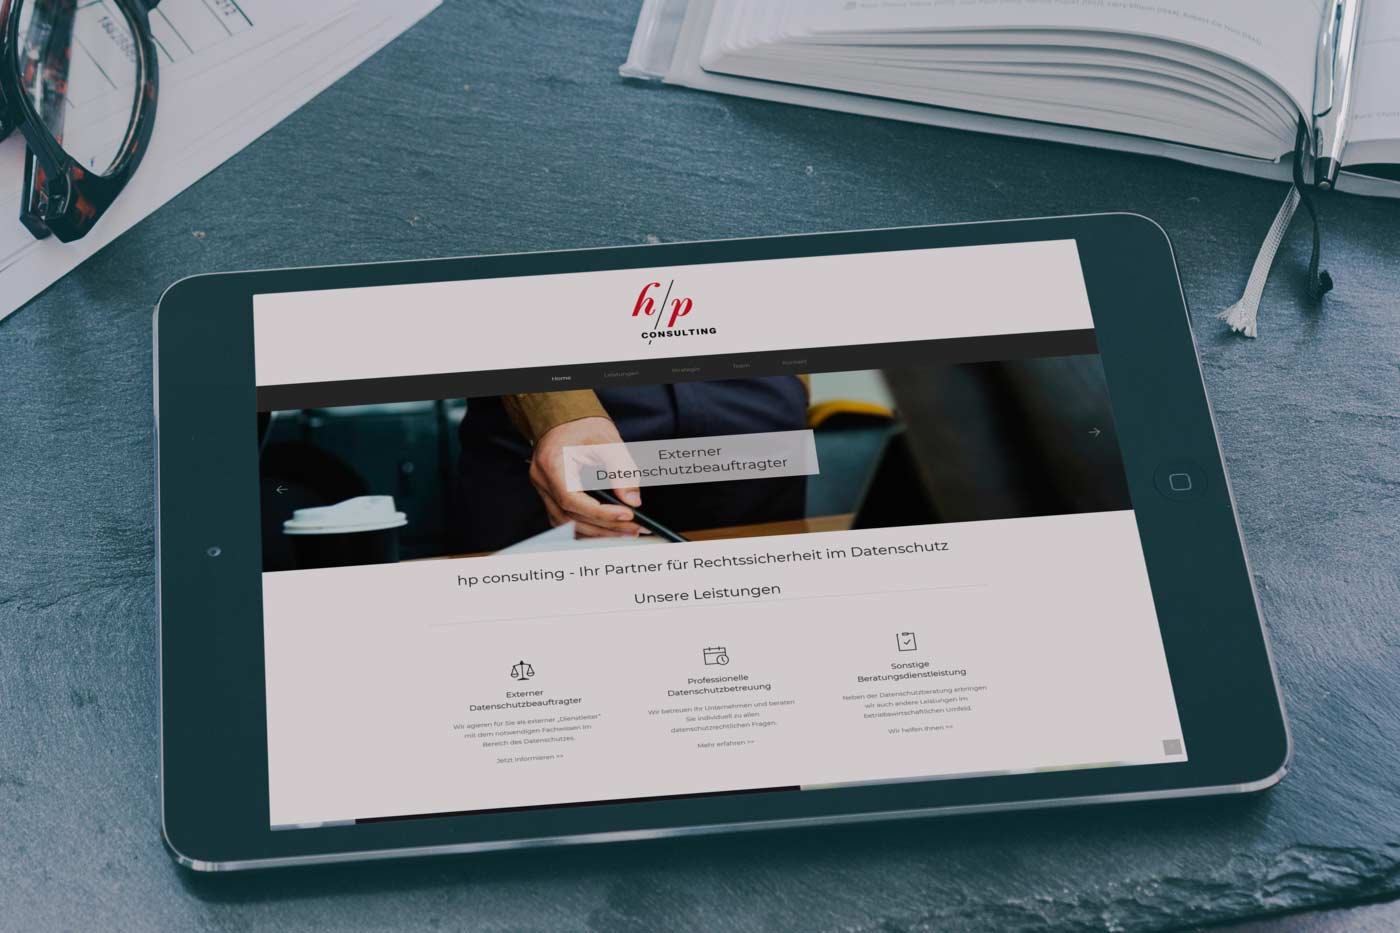 webdesign ingelheim hp consulting 02